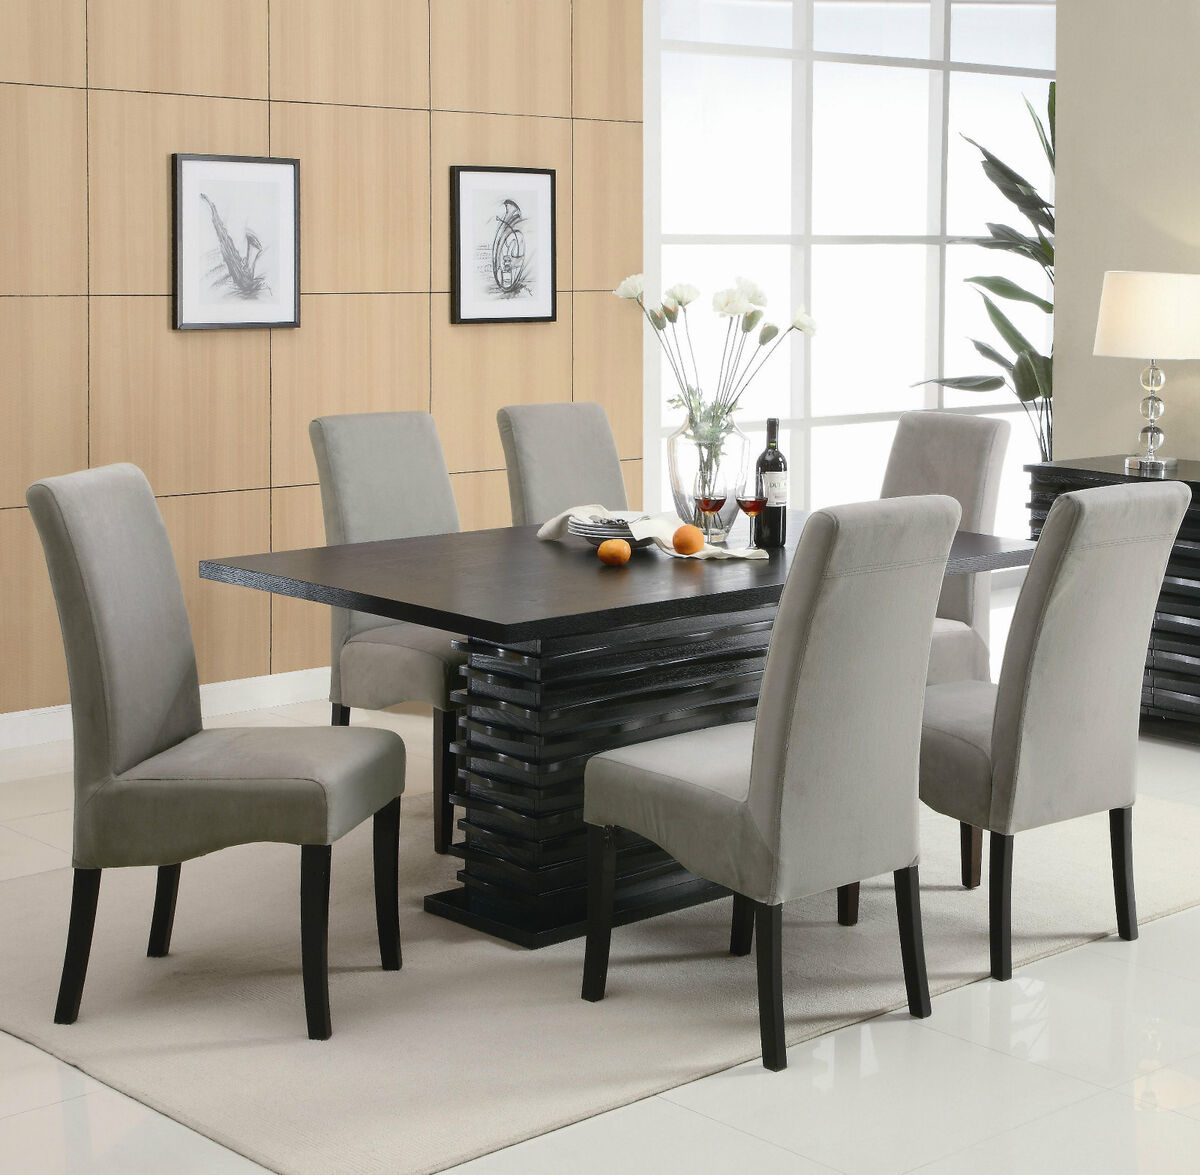 Dining table furniture contemporary dining table chairs for Modern dining room